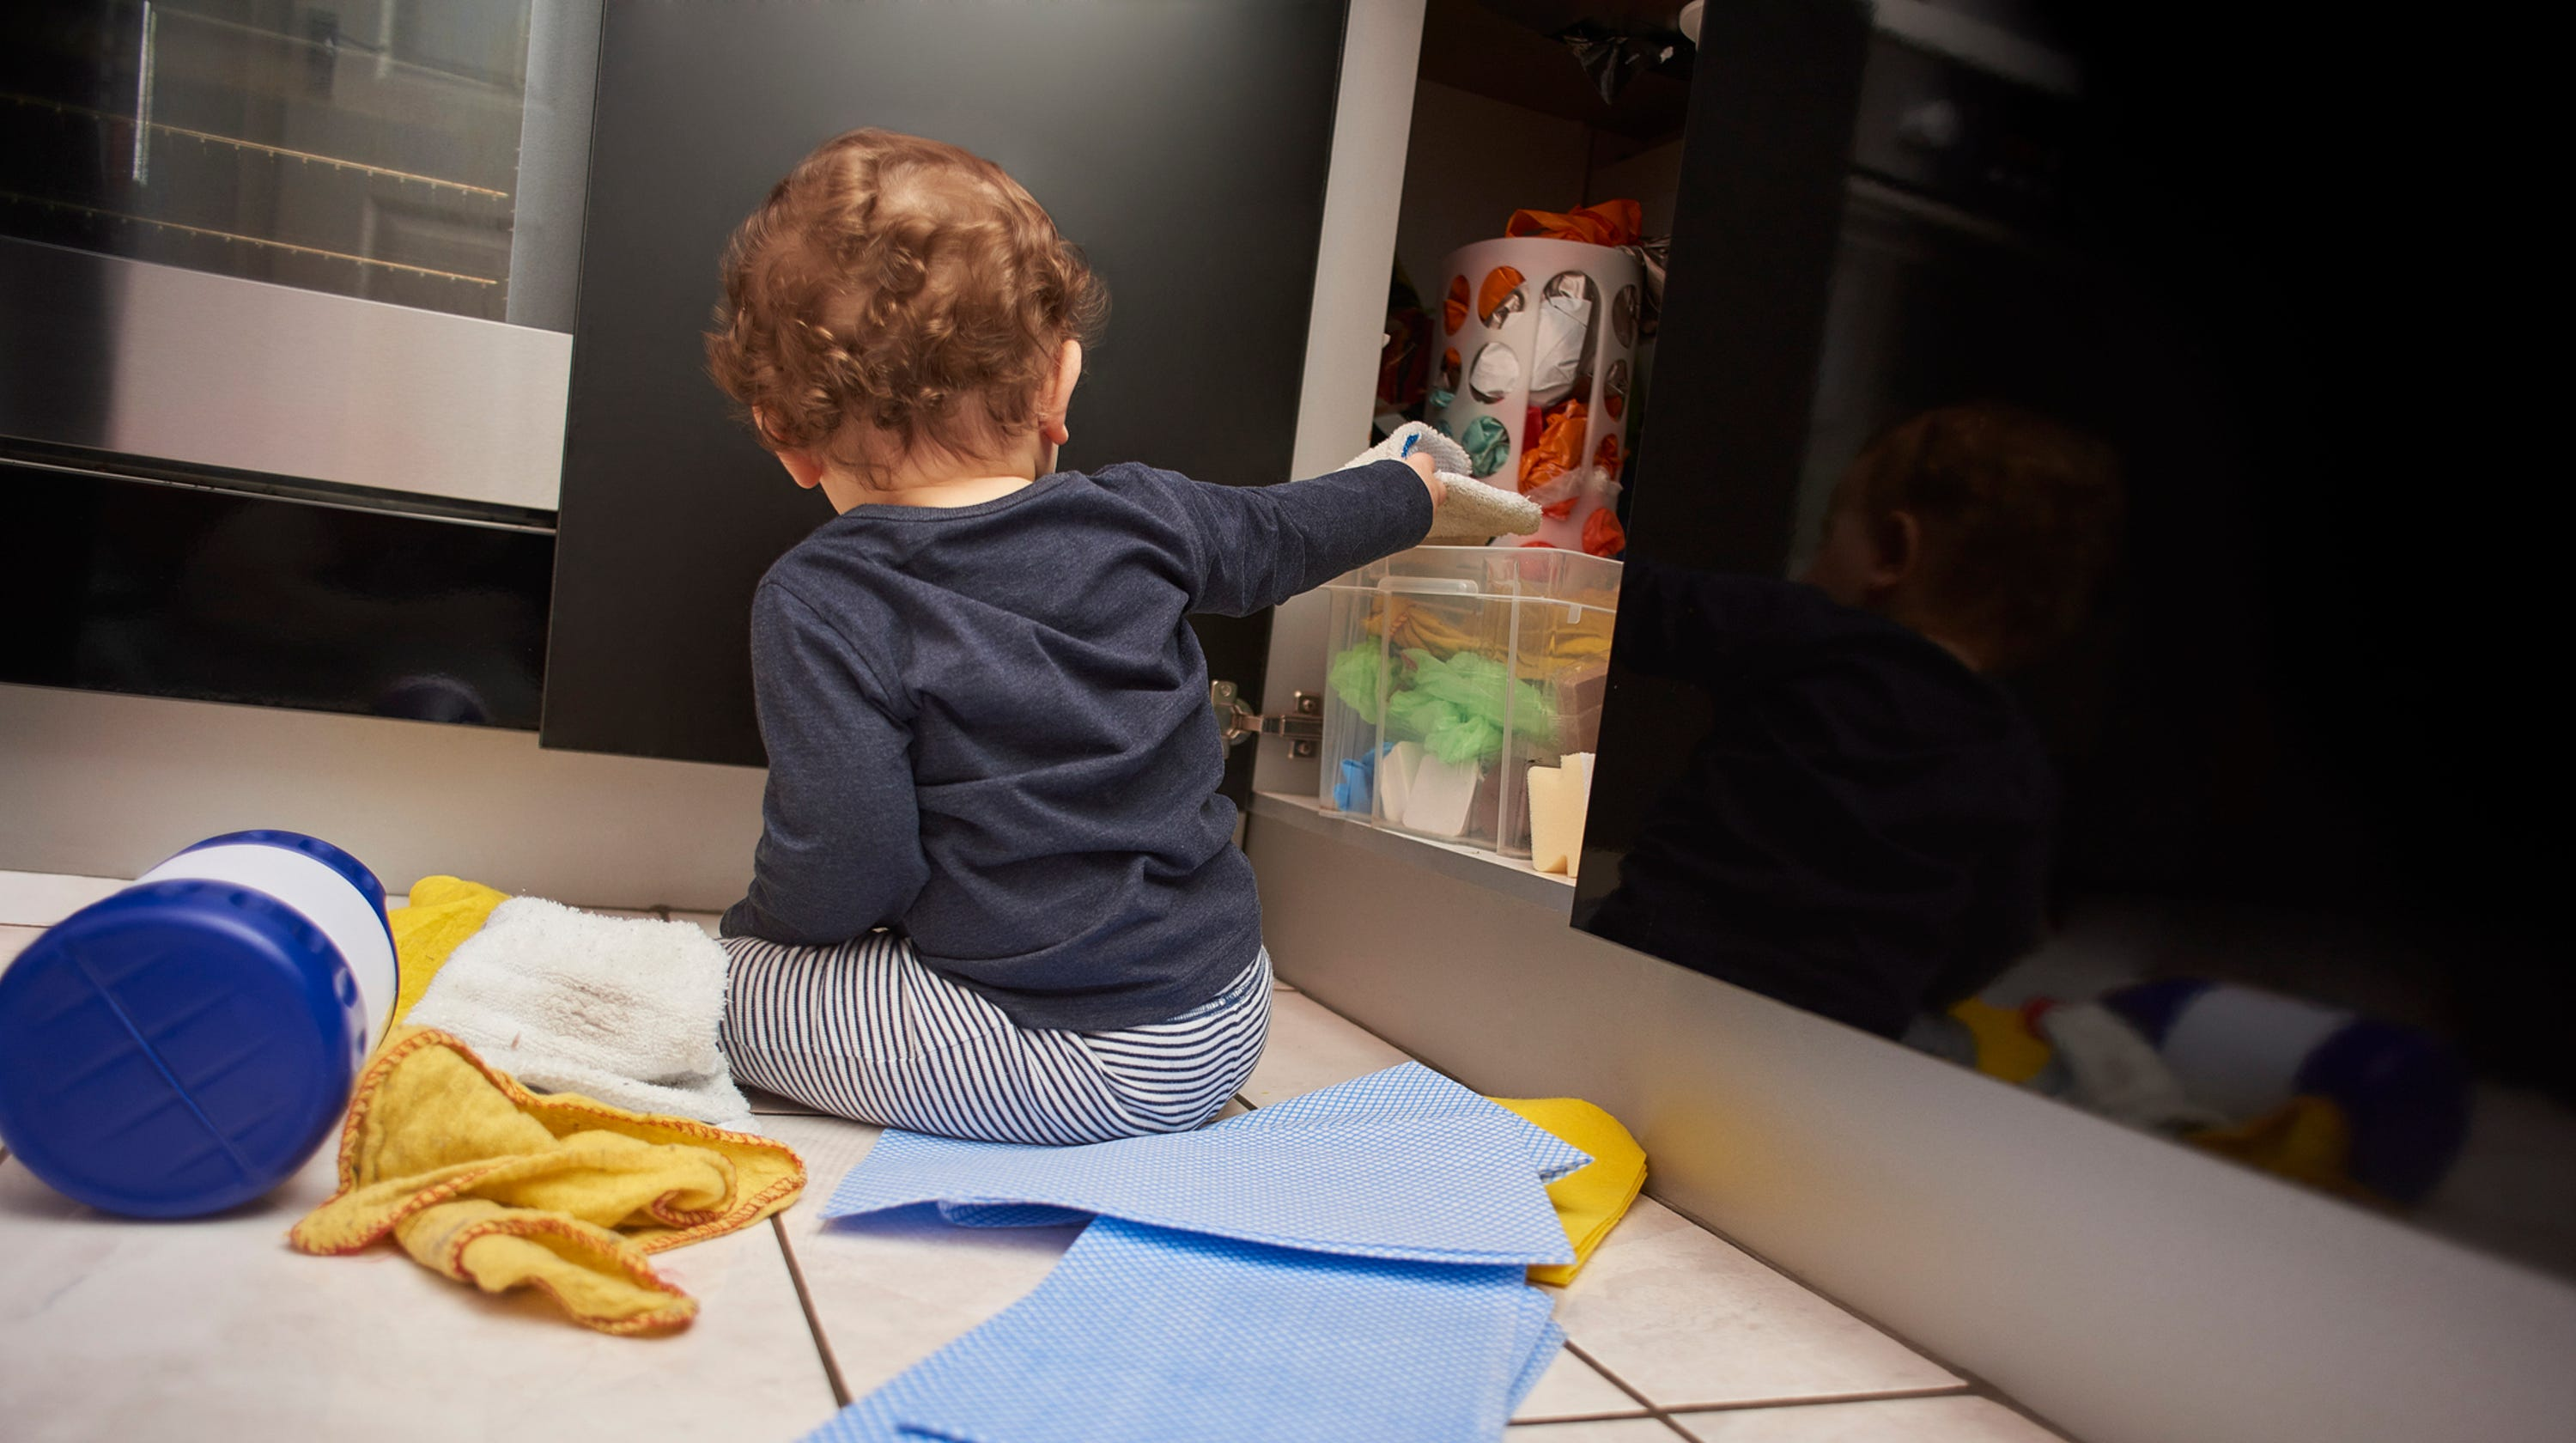 household safety preventing poisoning for parents - HD1280×960